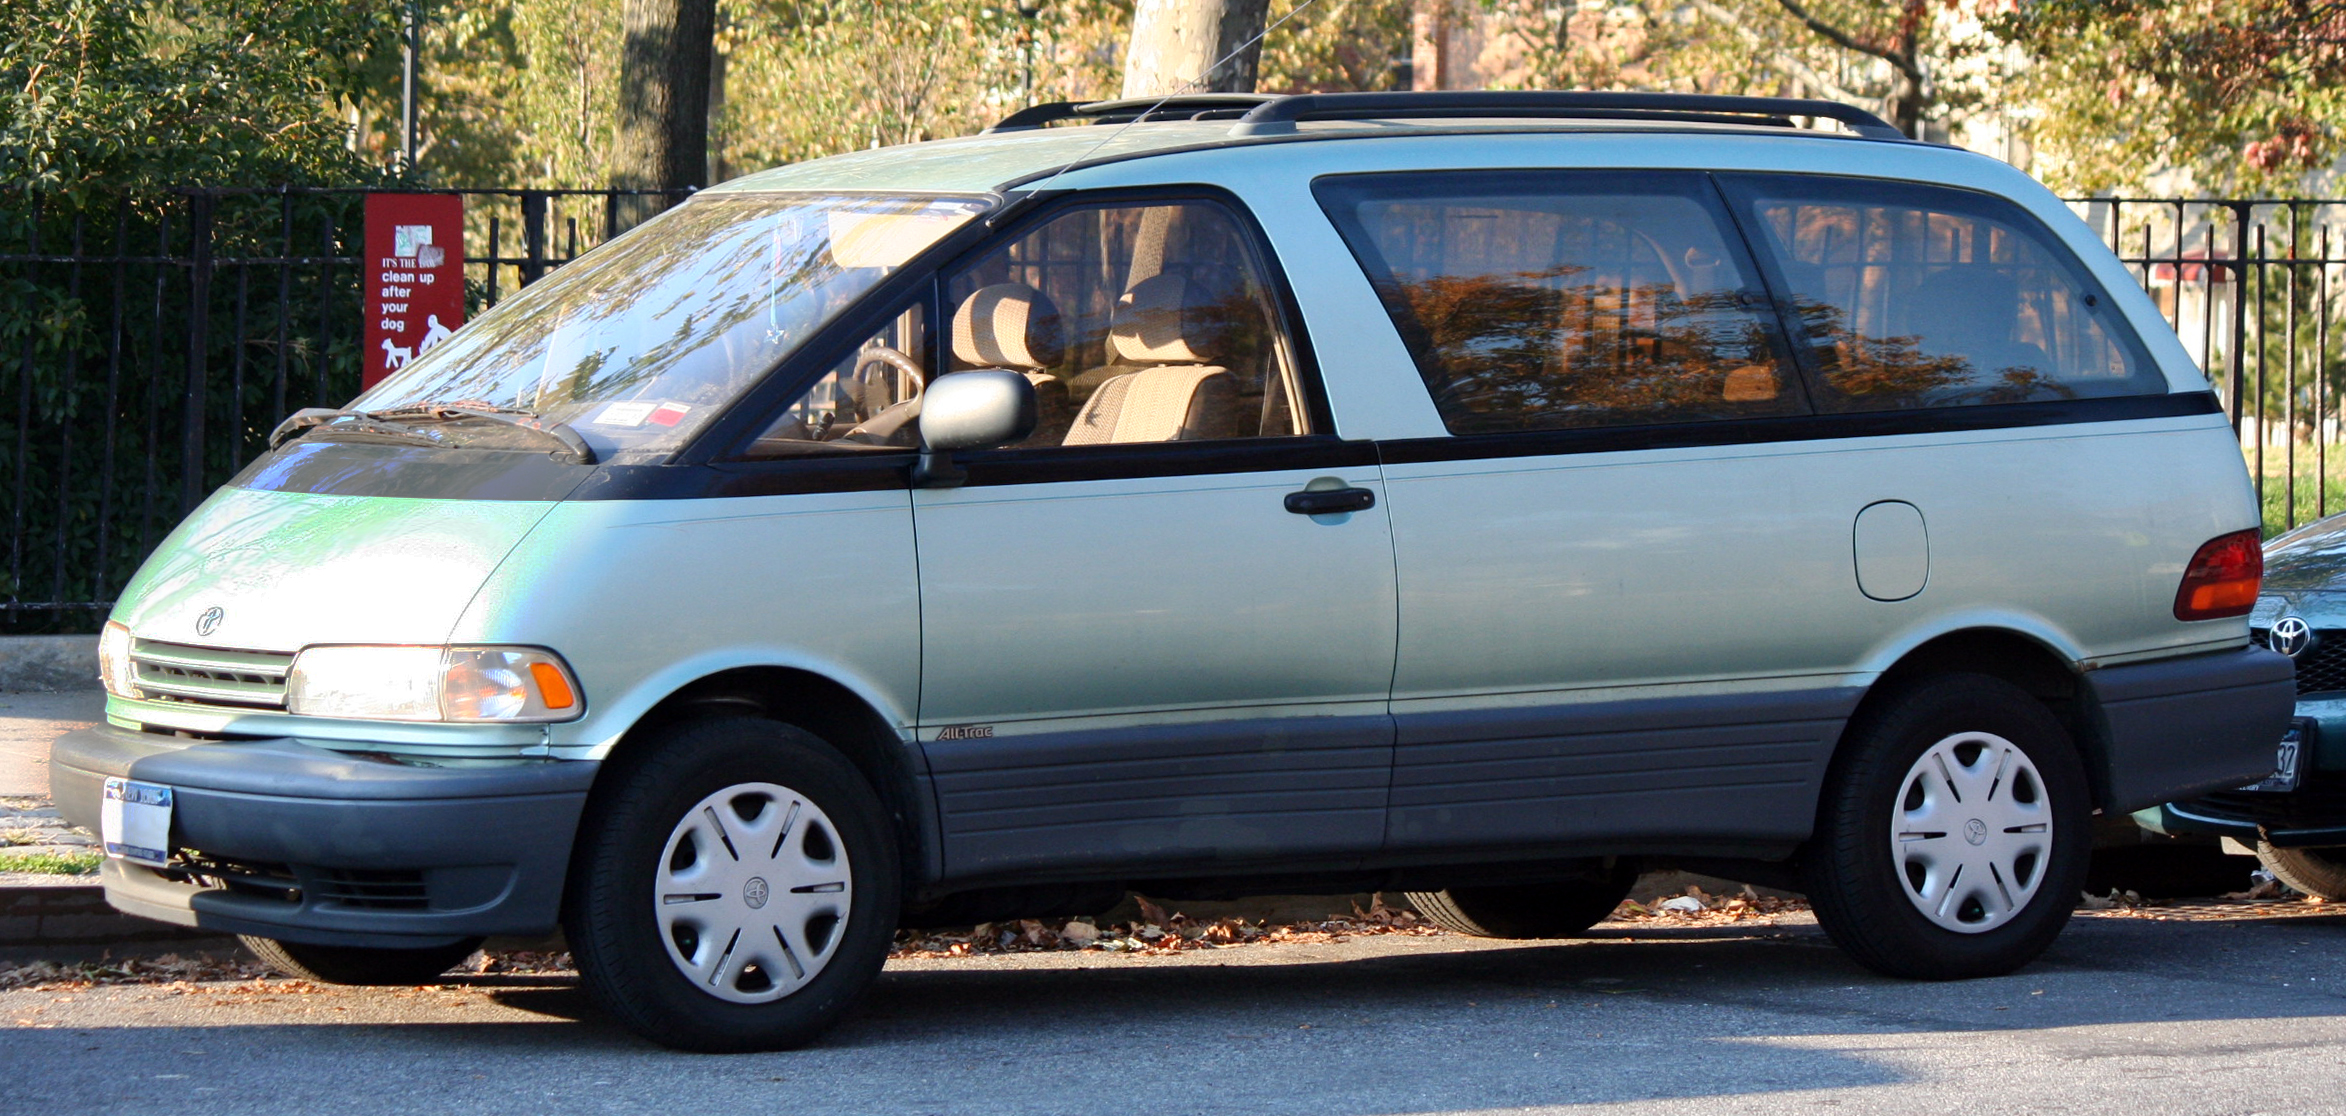 toyota previa pictures #6